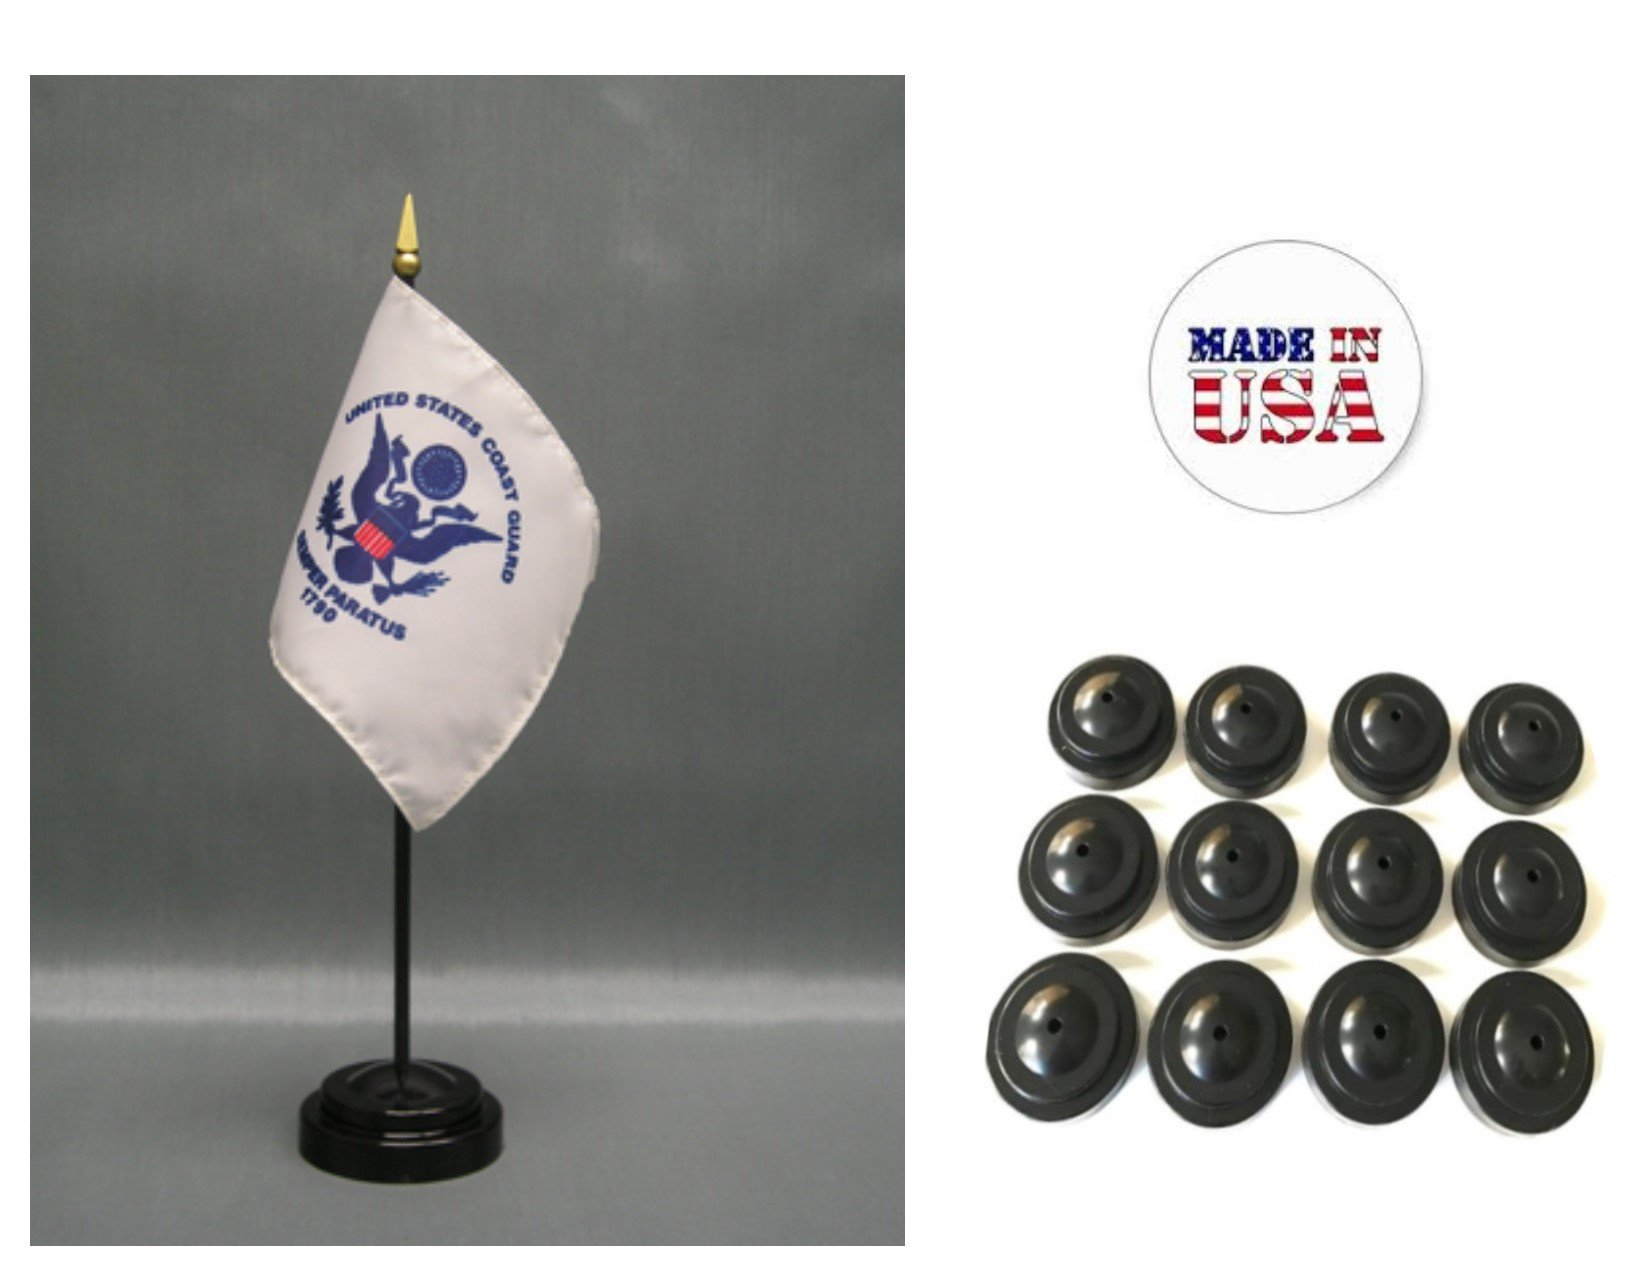 MADE IN USA!! Box of 12 United States Coast Guard 4''x6'' Miniature Desk & Table Flags Includes 12 Flag Stands & 12 American Made Small Mini Coast Guard Stick Flags